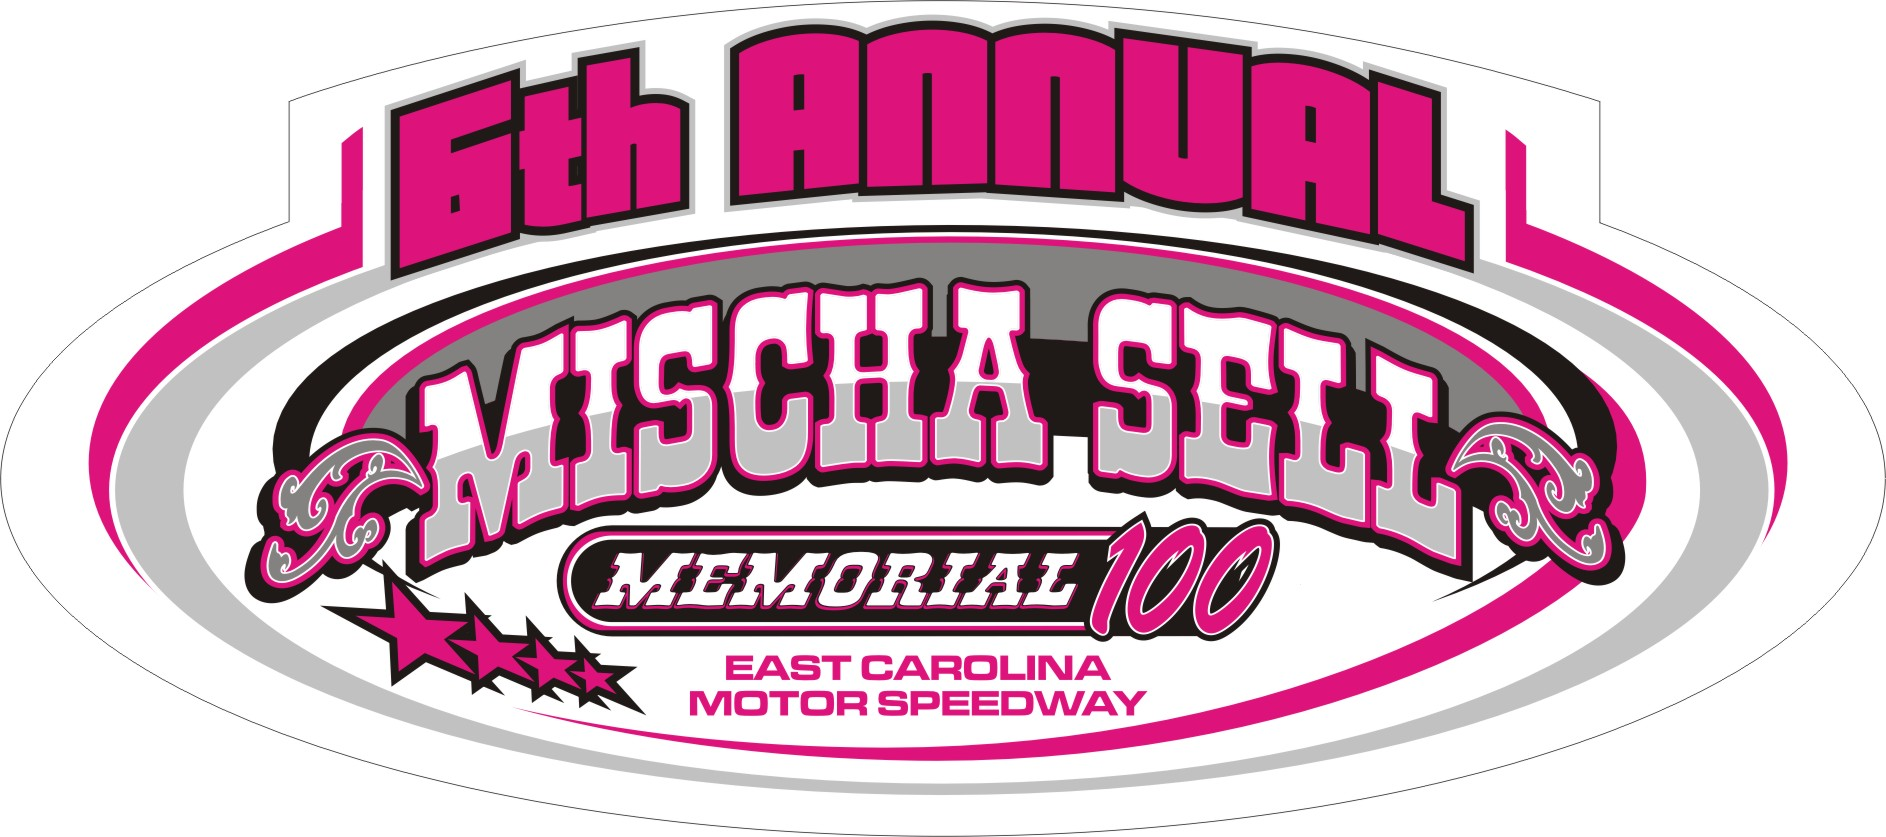 2017 Mischa Sell Memorial Race To Be Held At East Carolina Speedway